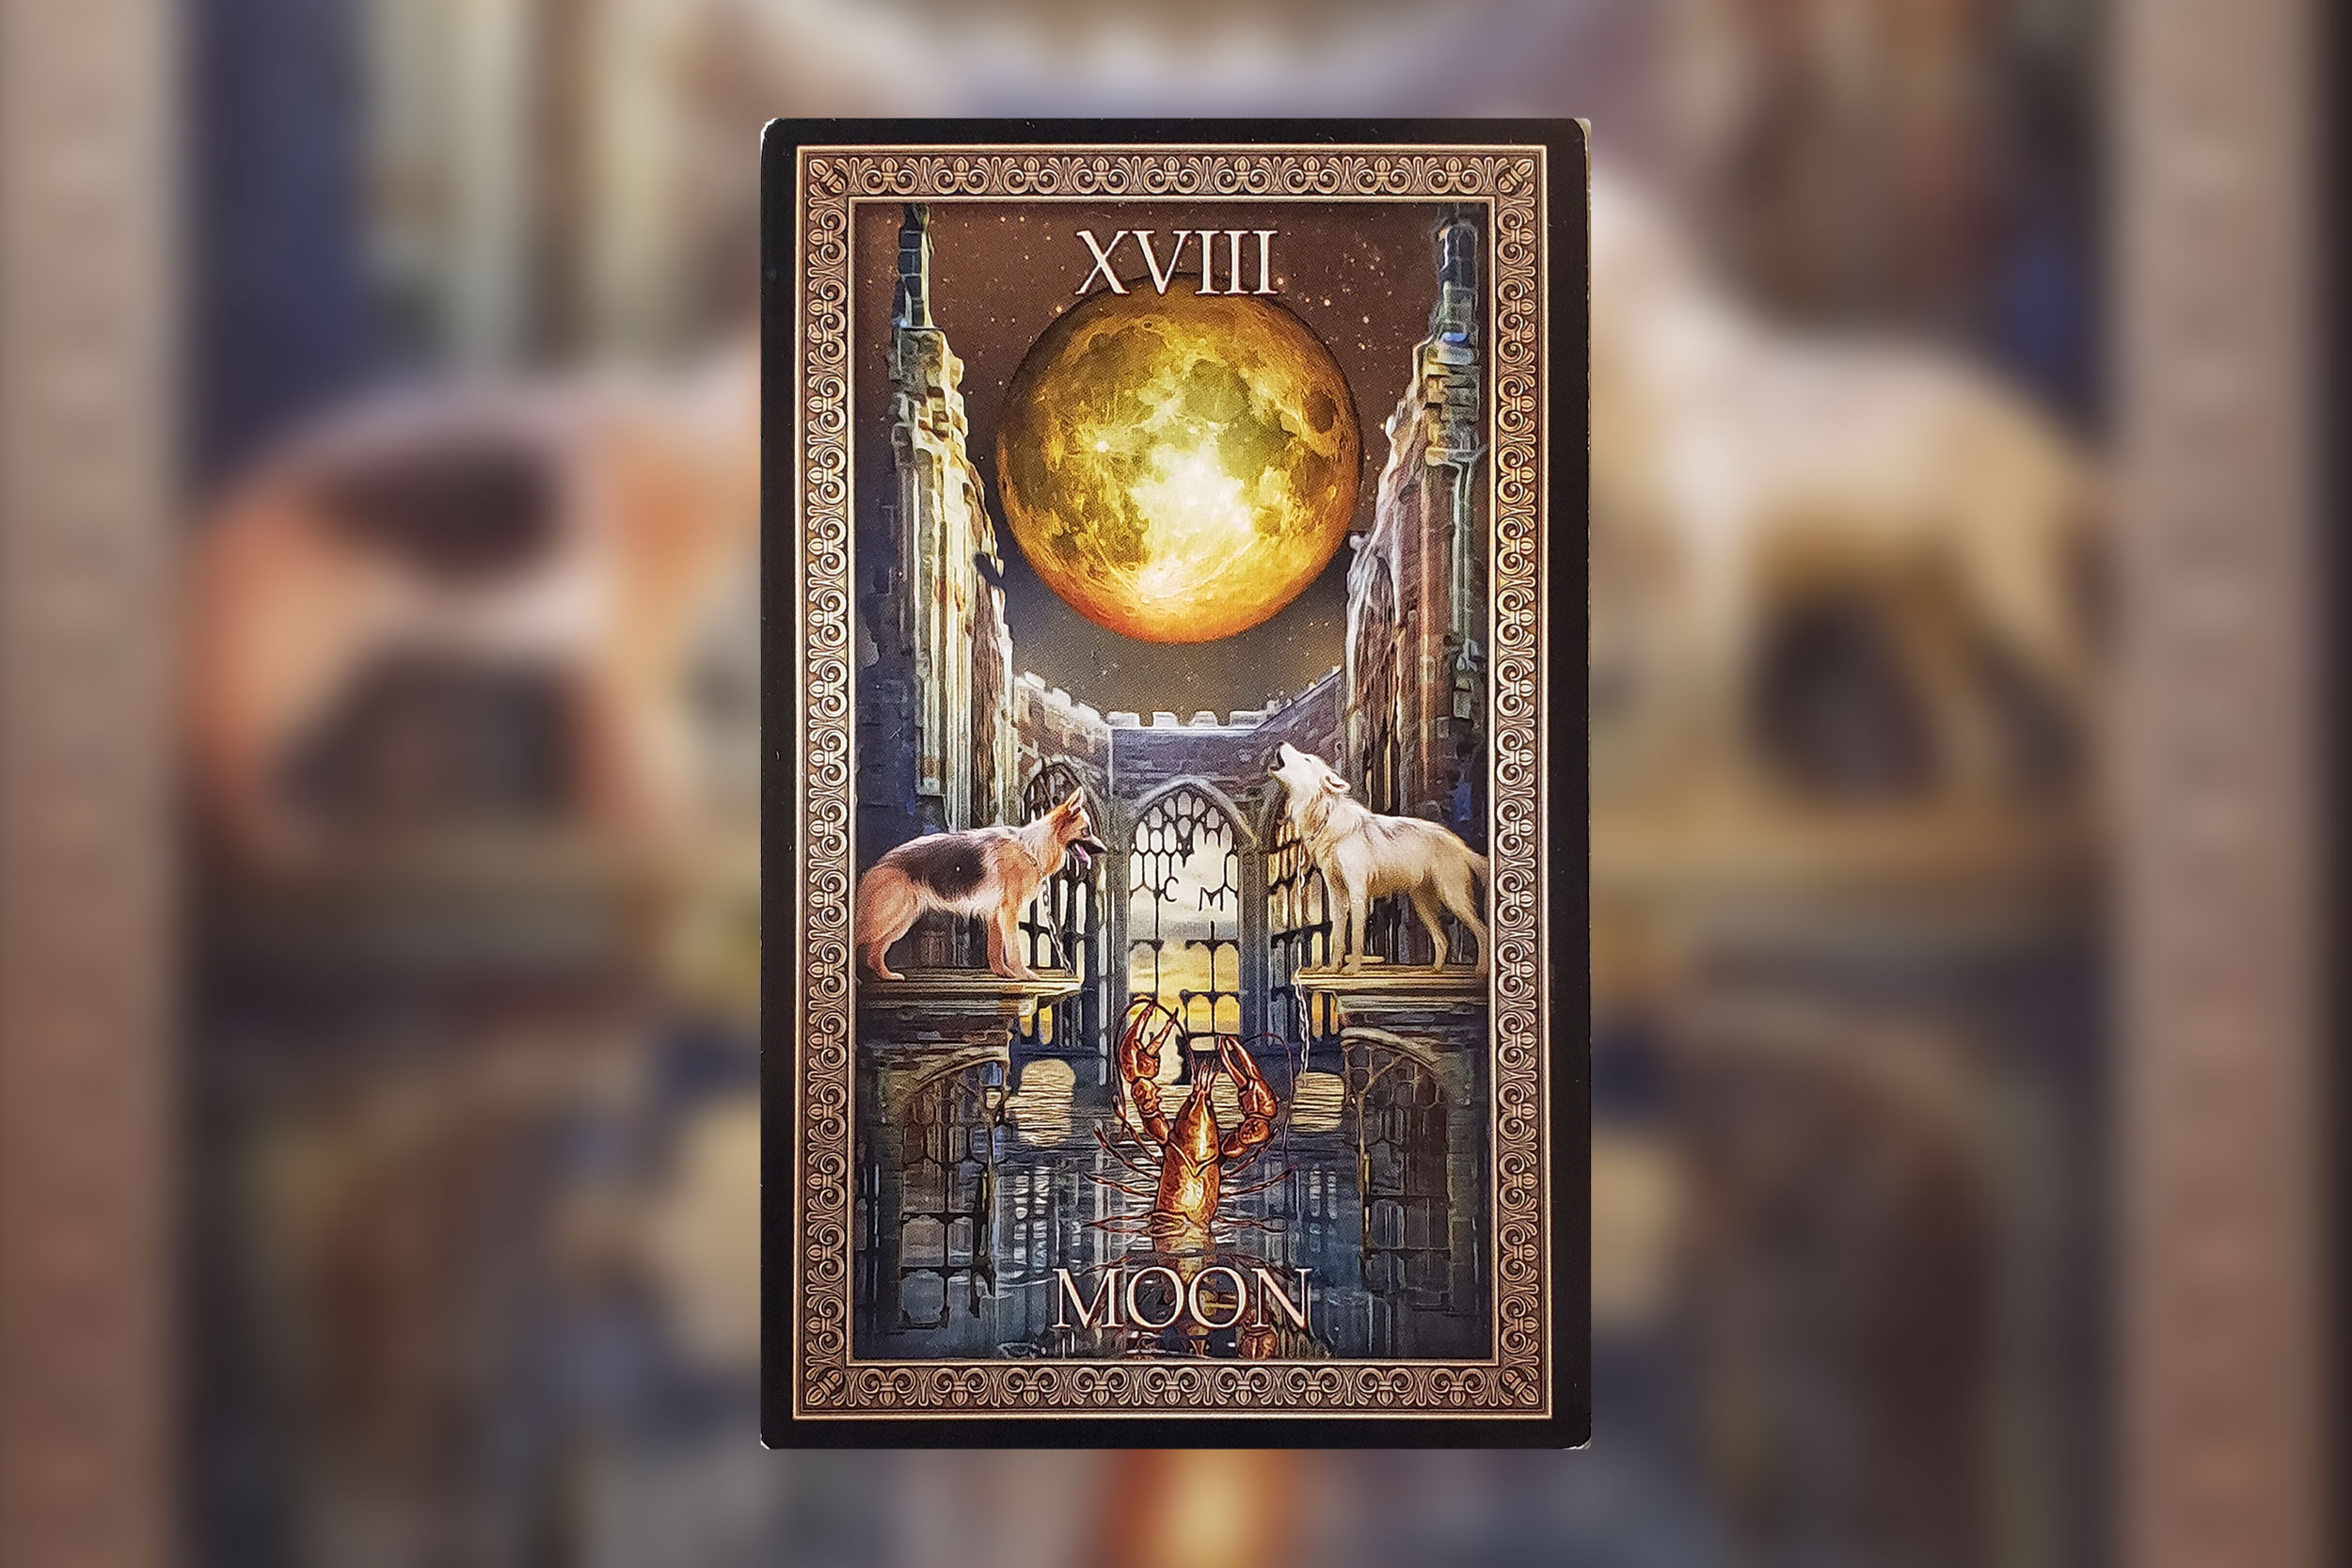 Image from Tarot Grand Luxe by Ciro Marchetti, published by U.S. Games Systems, Inc. Copyright 2019, Used with permission.